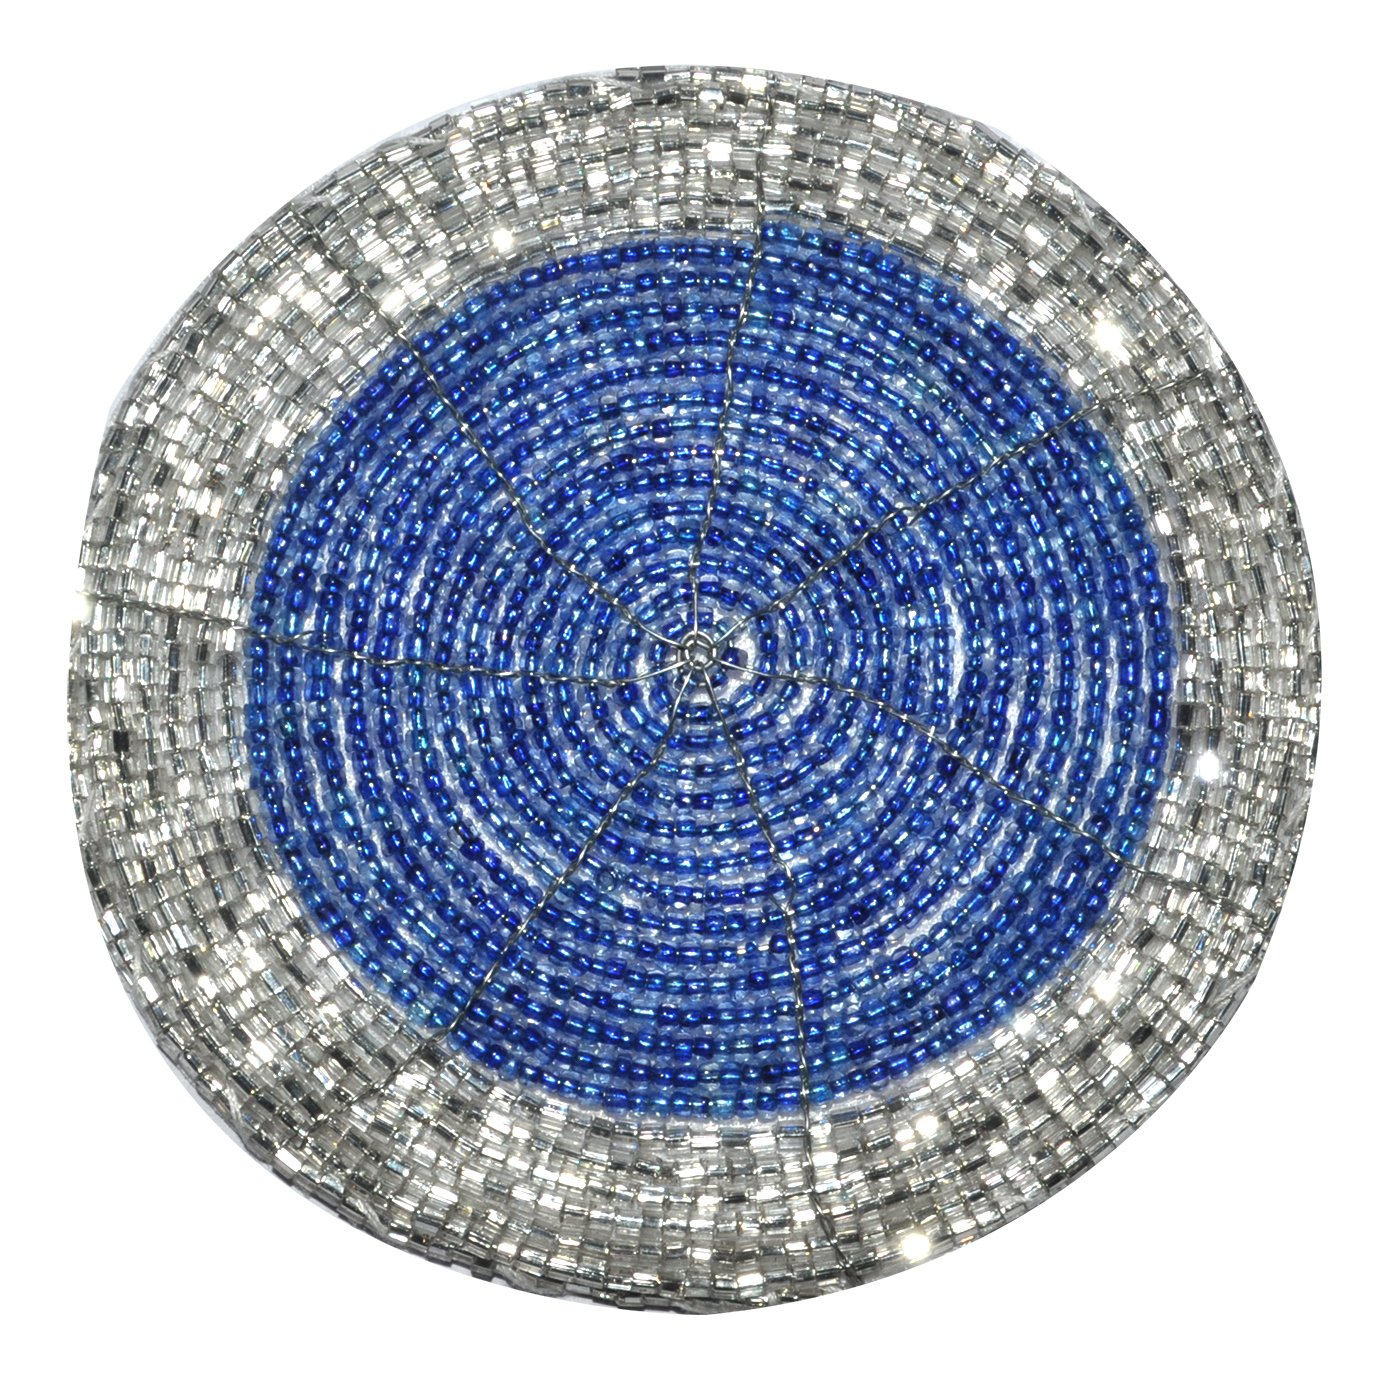 DakshCraft 4 Beaded Round Ethnic Placemat/Tablemat(Dia - 12'') with 4 tea cup coaster(Dia - 4'') and 4 napkin ring(Dia -1.5'') for Christmas Gift, Decorative Item, Gifts Purpose, dining accessories by DakshCraft (Image #4)